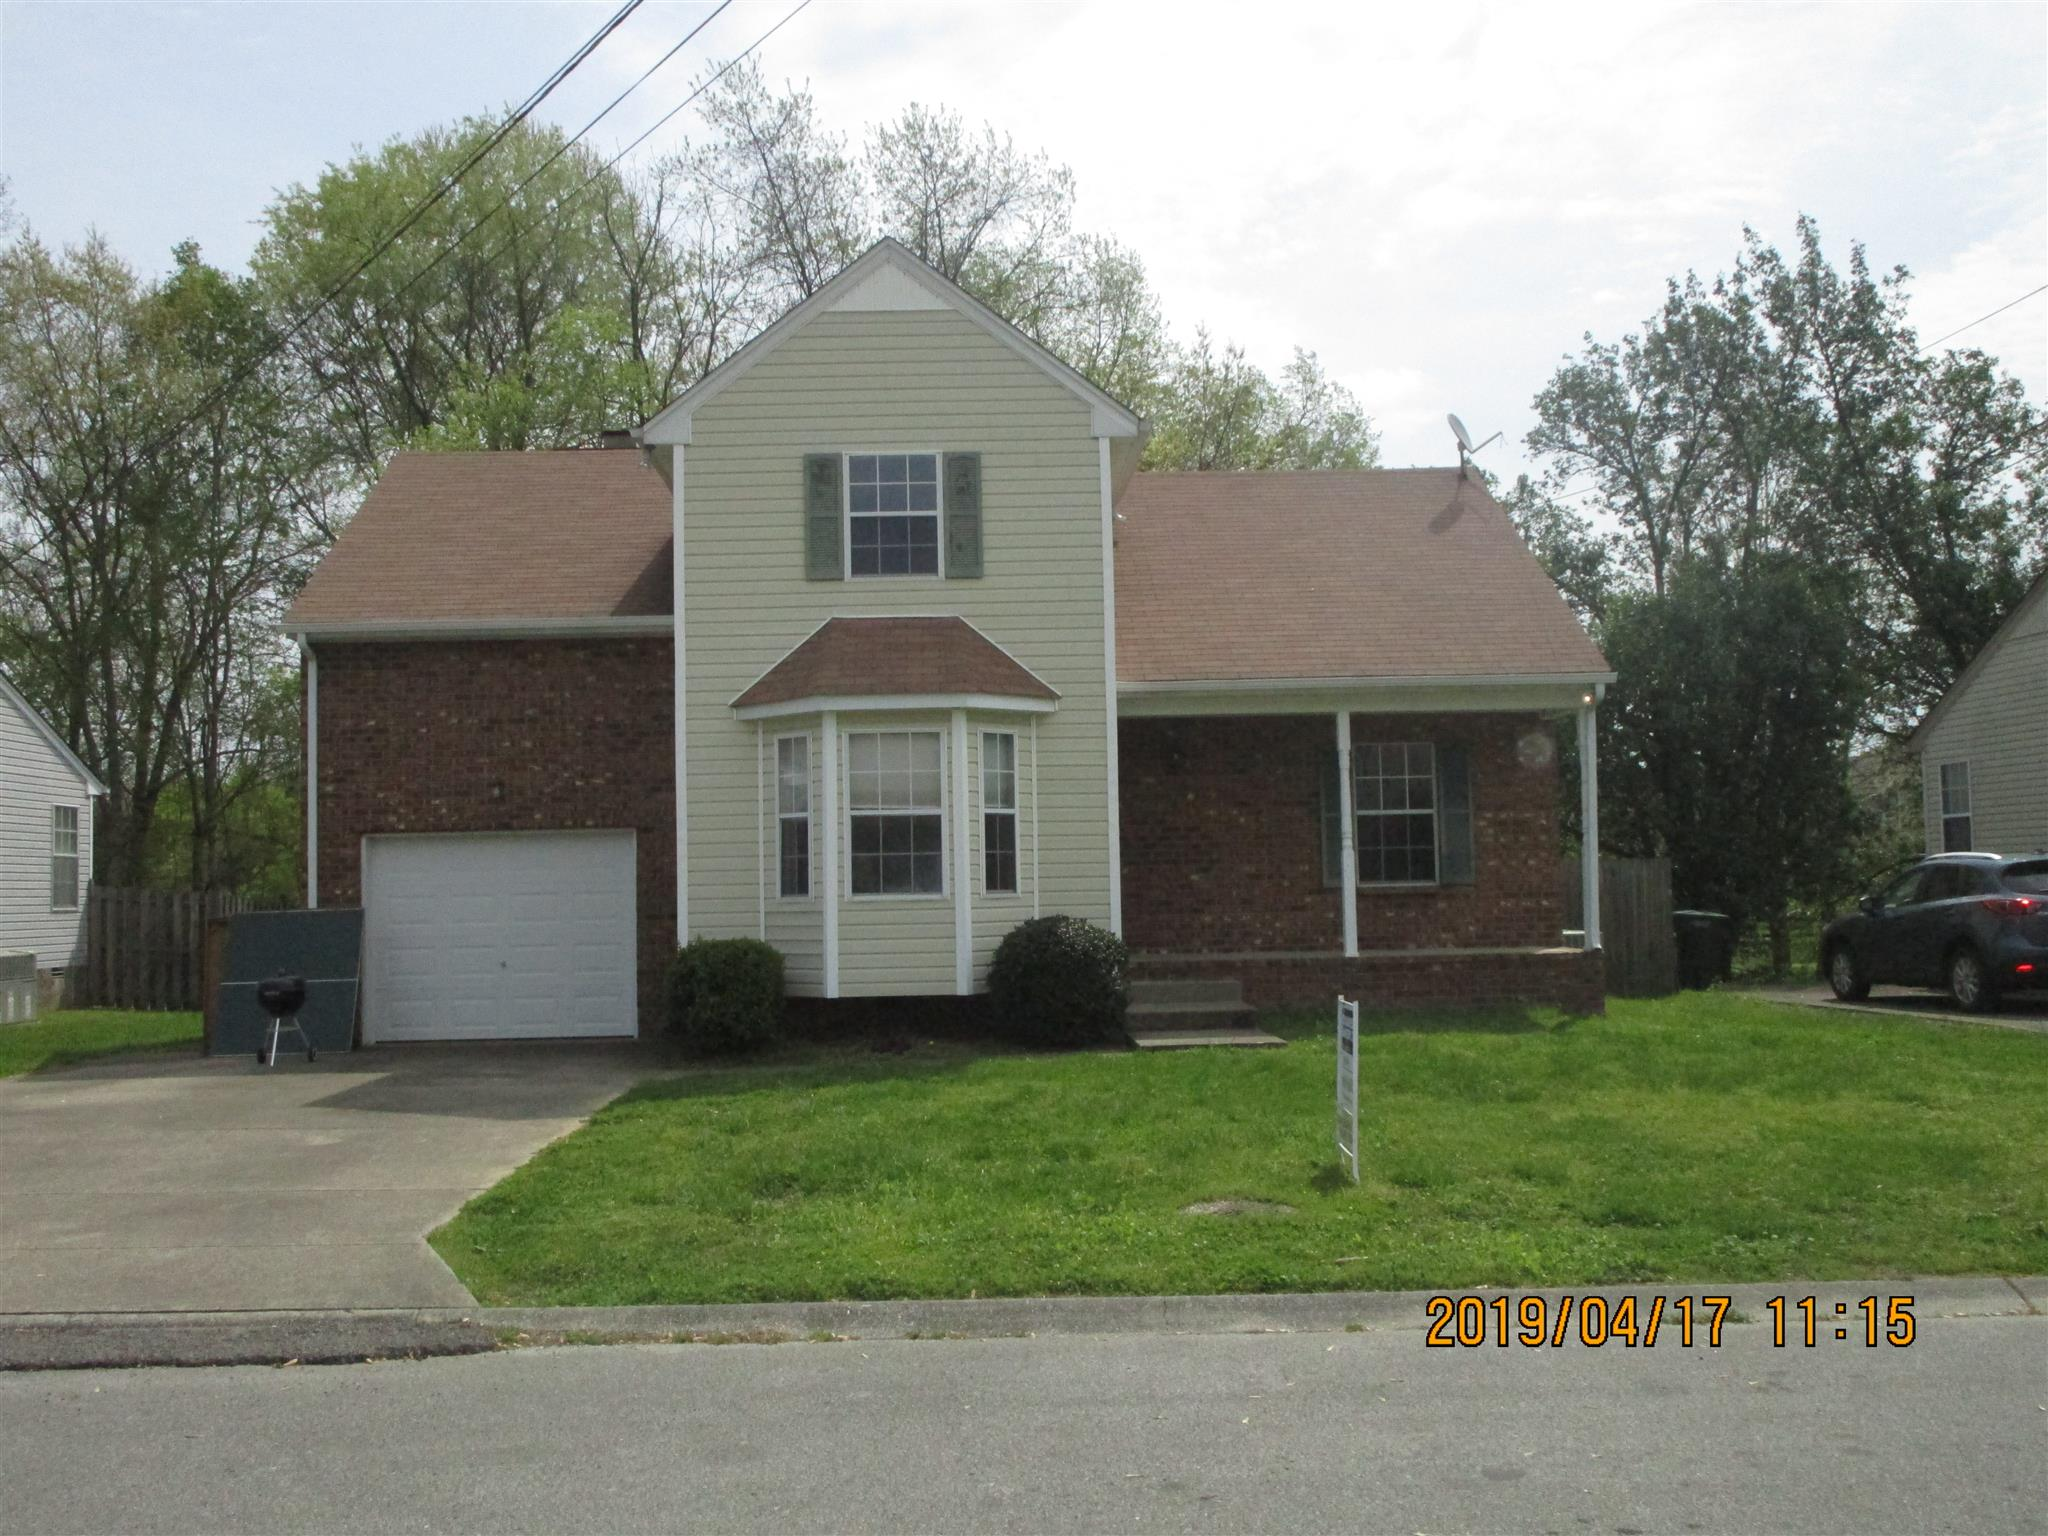 108 Scotts Creek Cir, Hermitage in Davidson County County, TN 37076 Home for Sale